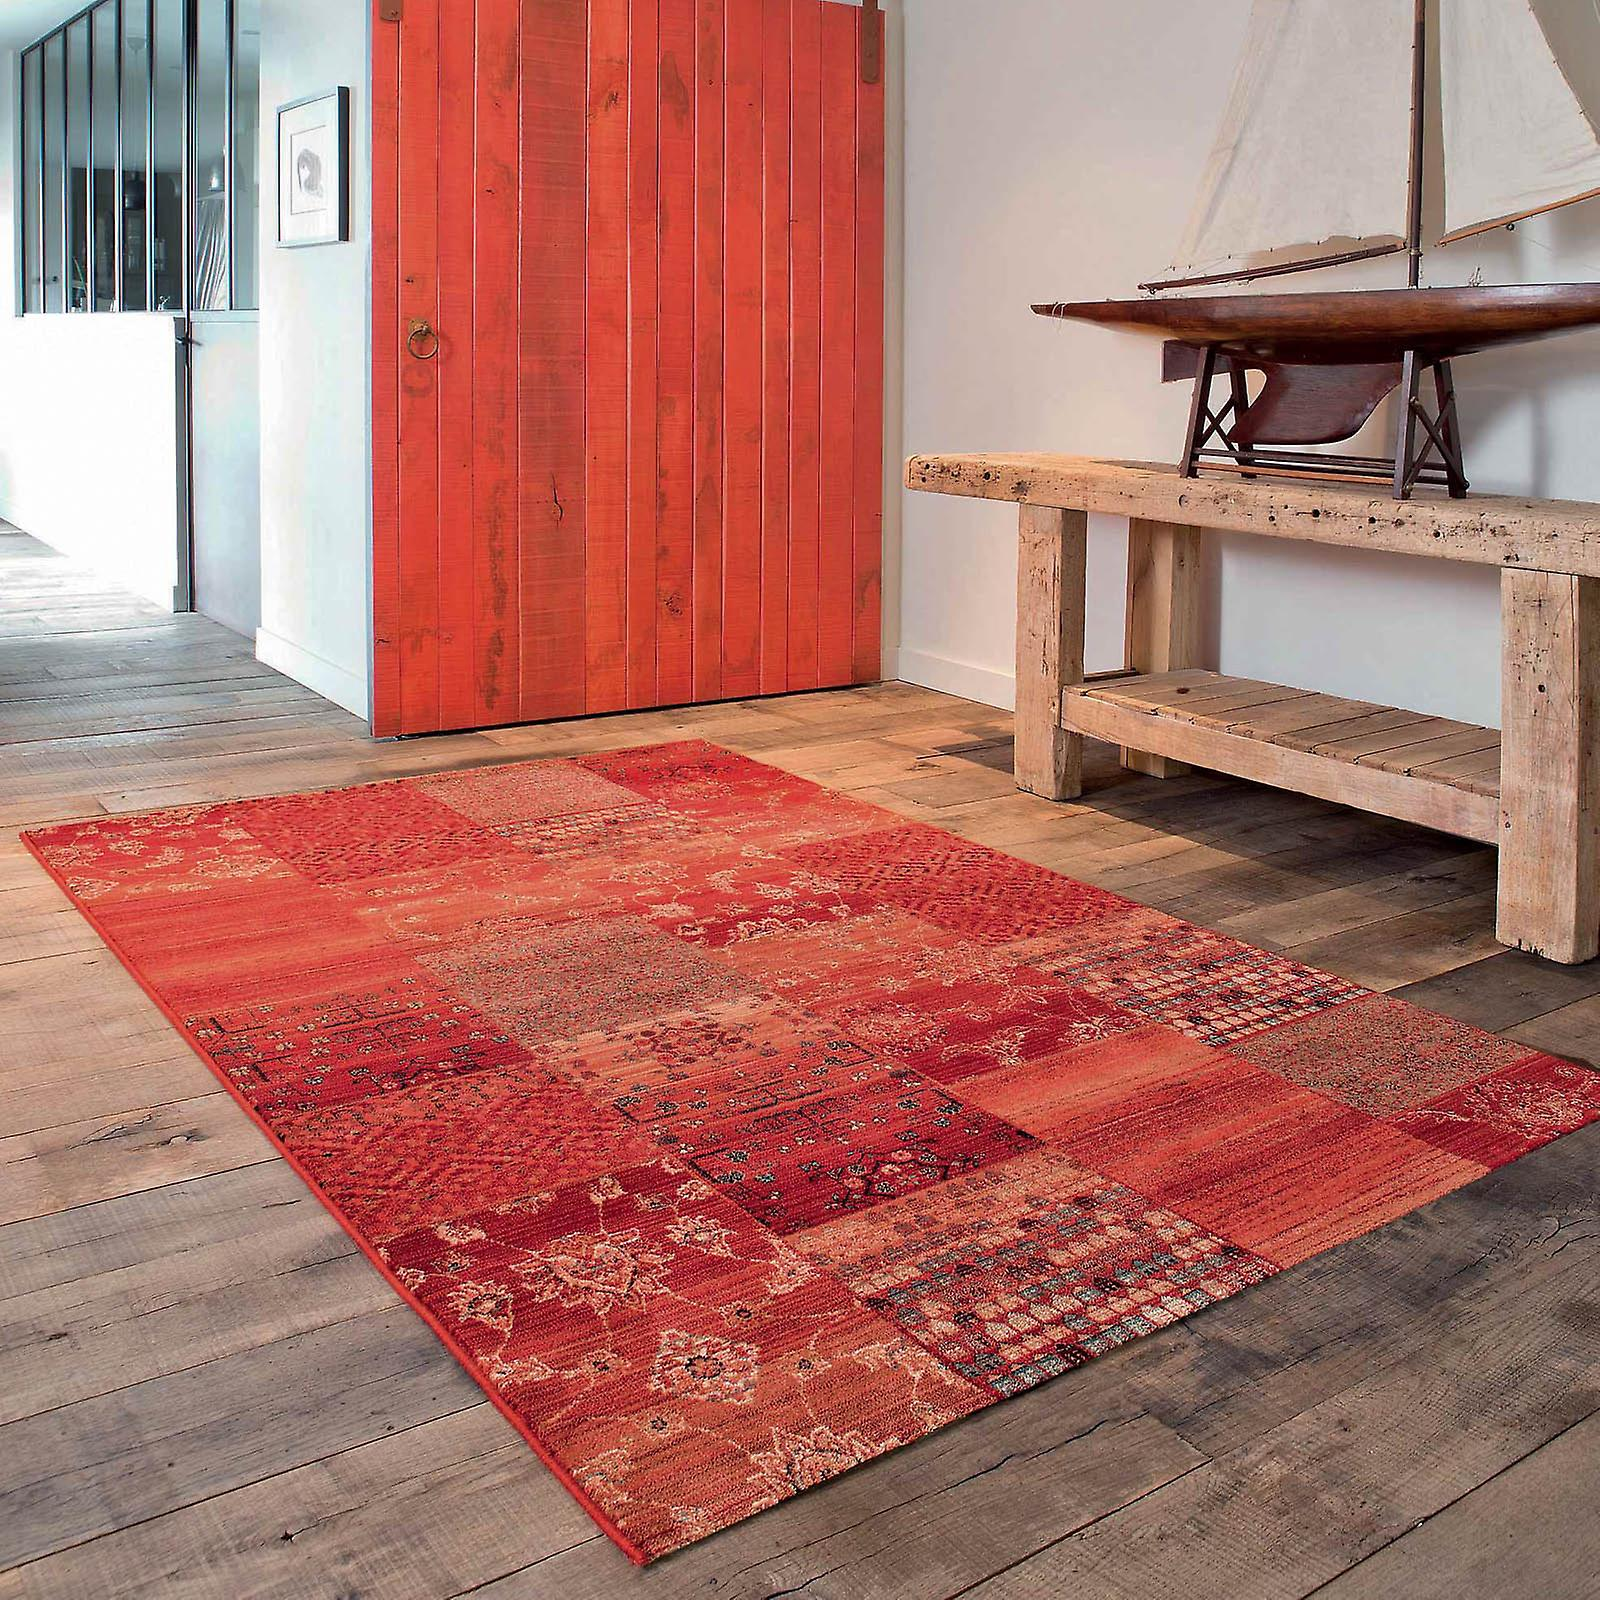 Royal Kashqai Rugs 4327 300 In rouge